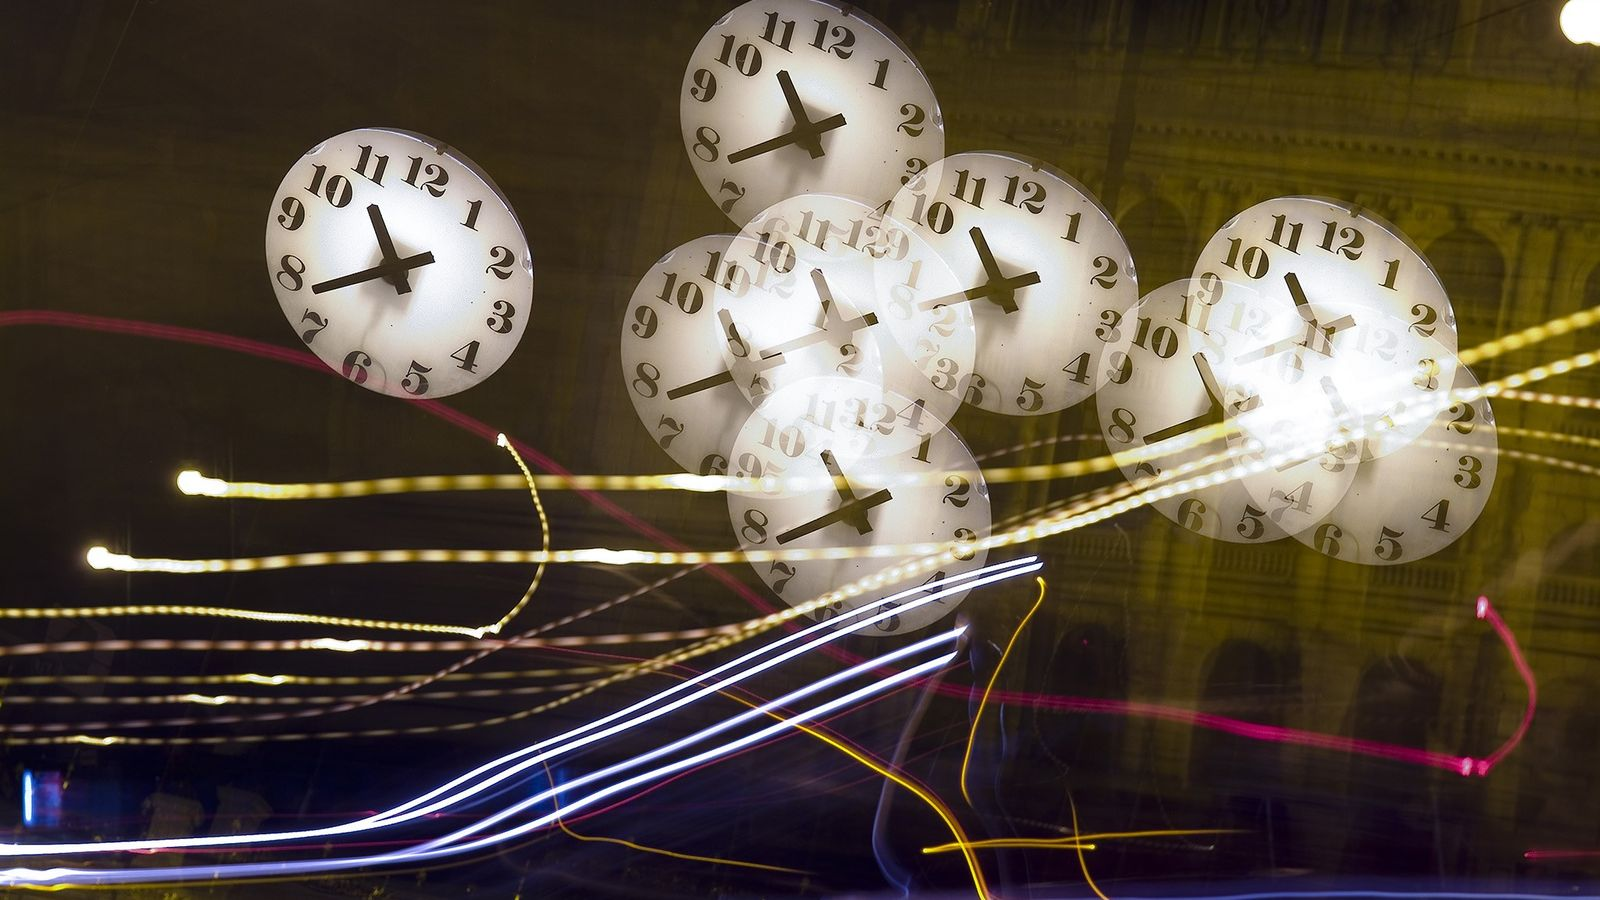 Most of the modern world has adopted the Gregorian calendar and its leap year system to ...